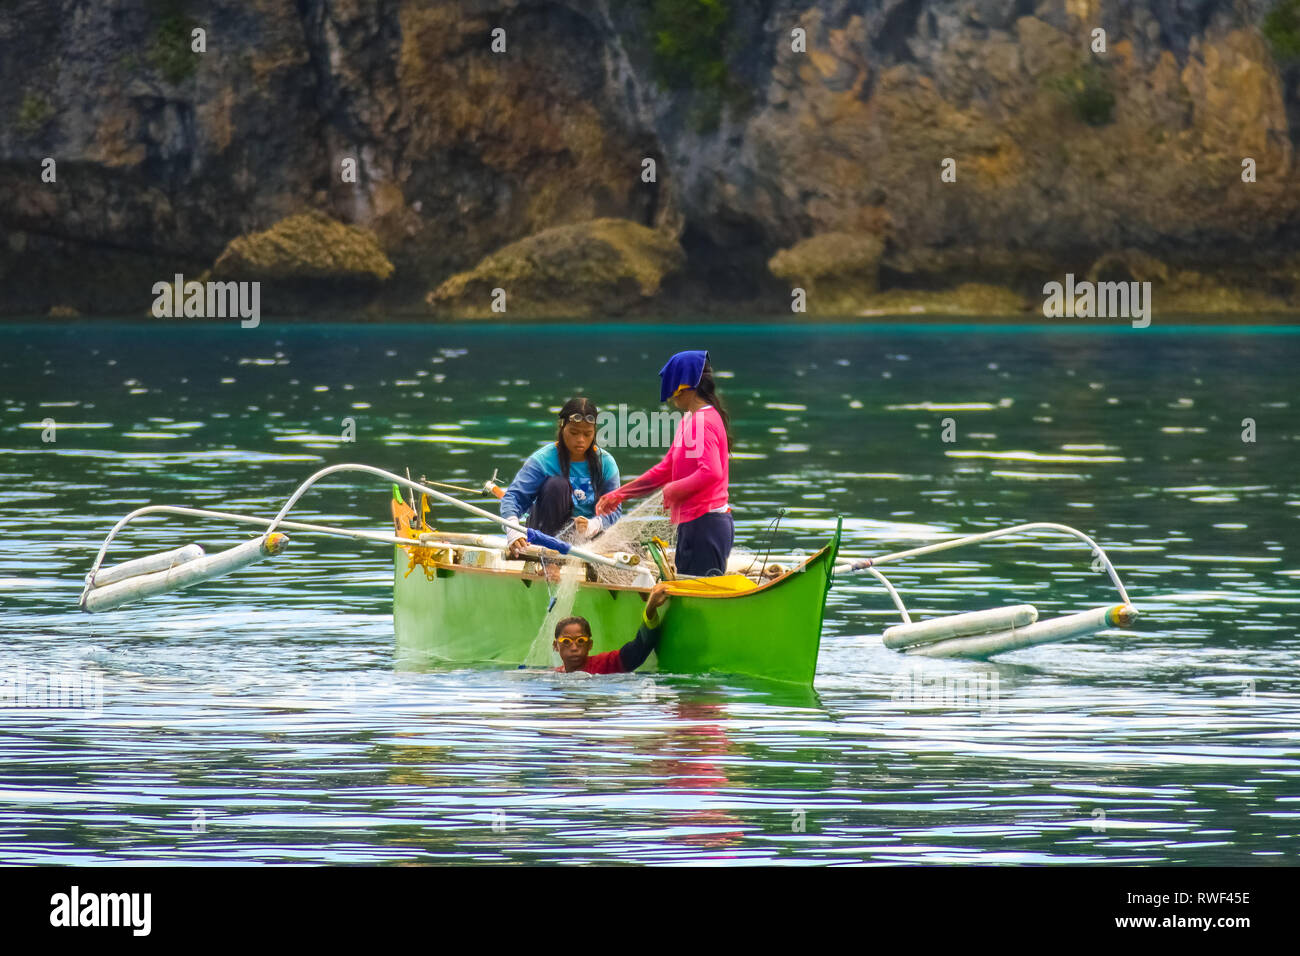 Filipino Boy Wearing Goggles, Diving and Fishing With Women in Green Boat - Siargao, Philippines - Stock Image